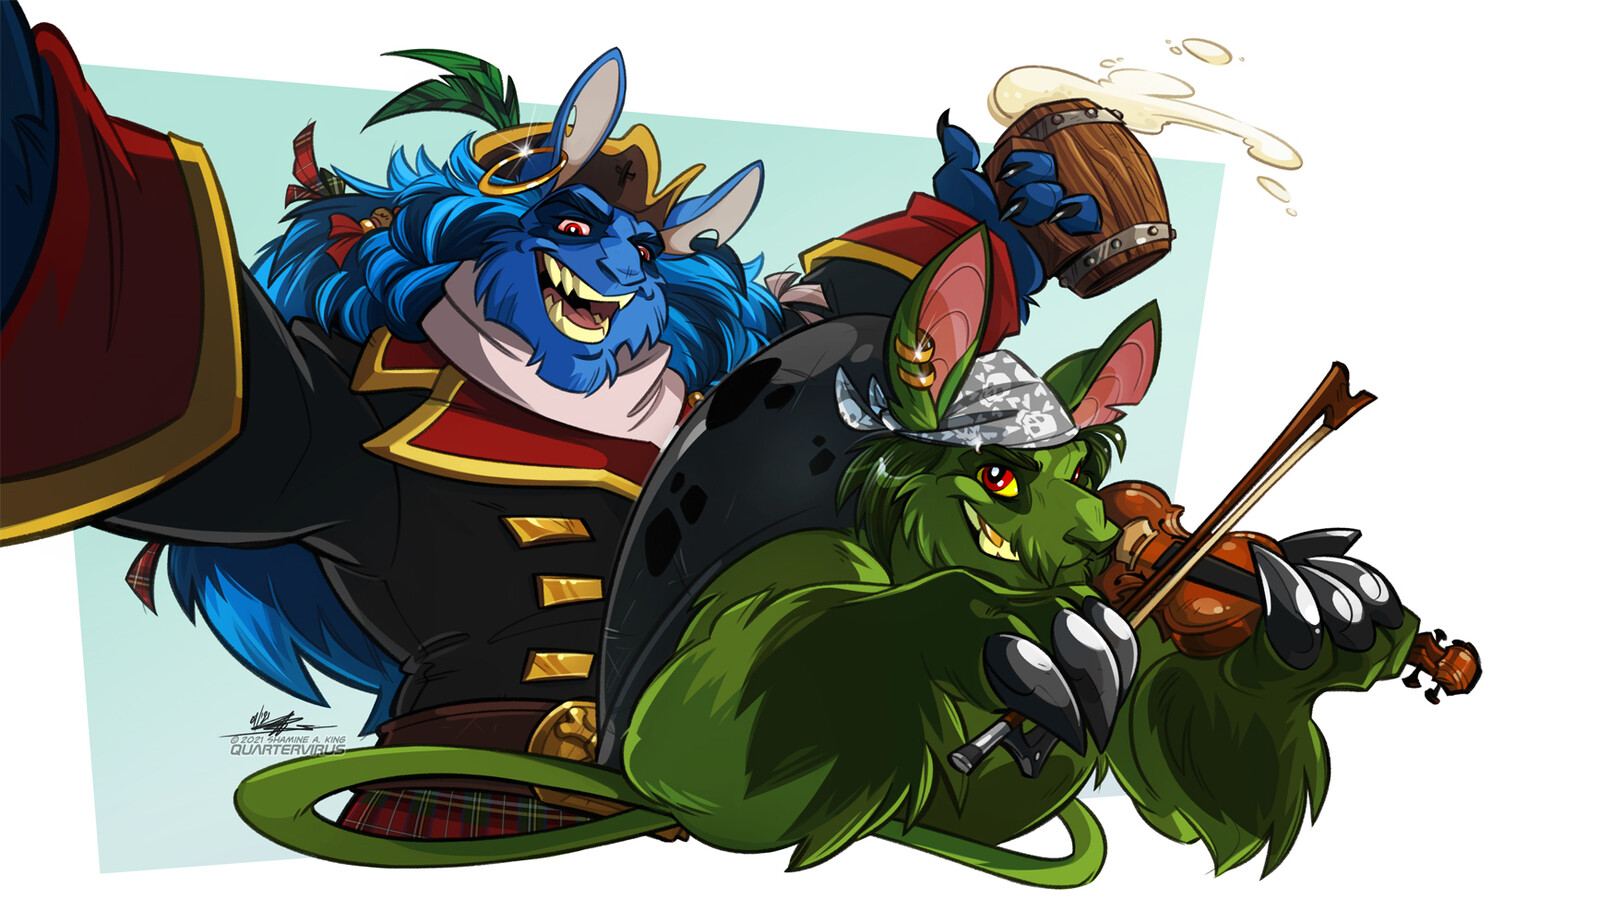 Starting the new year with Horace and Hart, my Neopets celebrating with a bit of (child-friendly liquid and) a good tune.